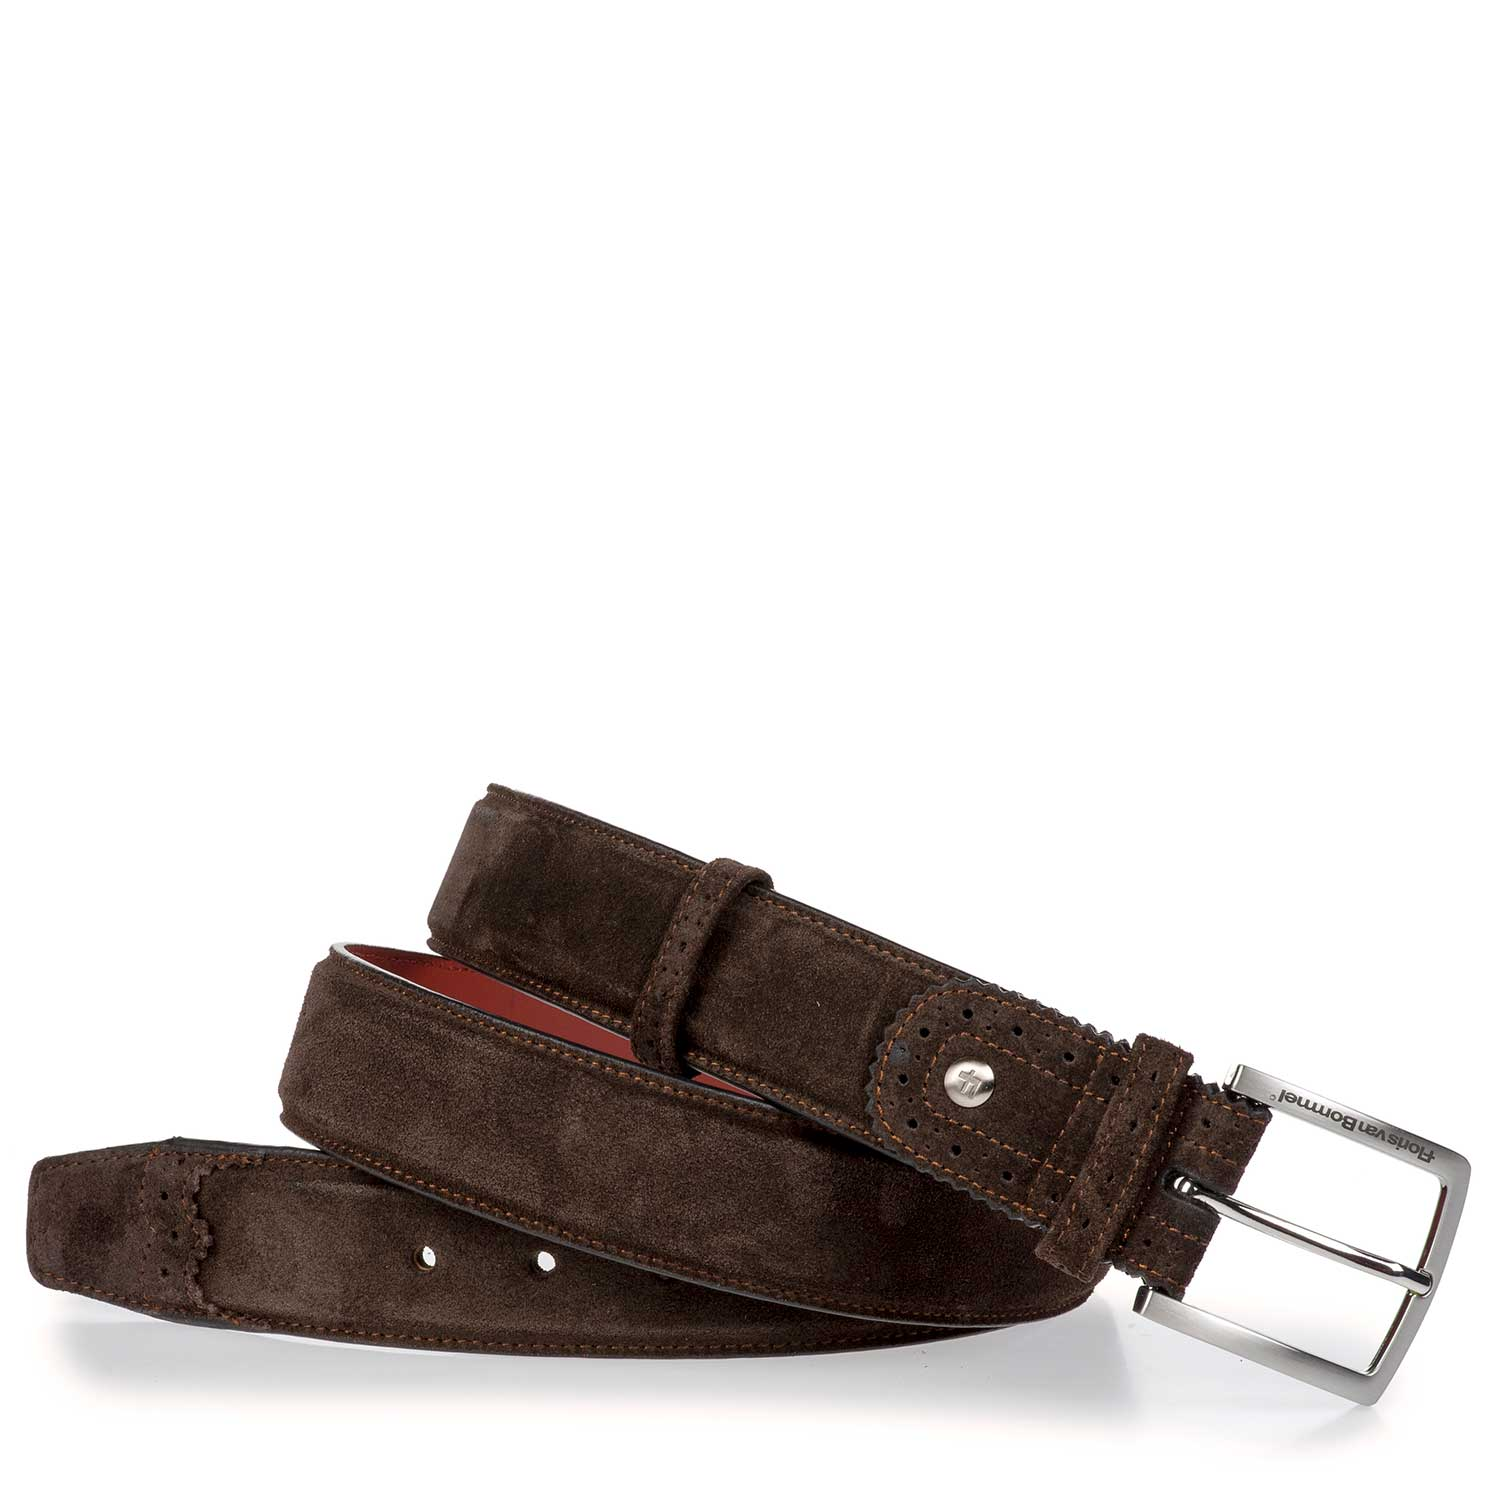 75171/15 - Brown suede leather belt